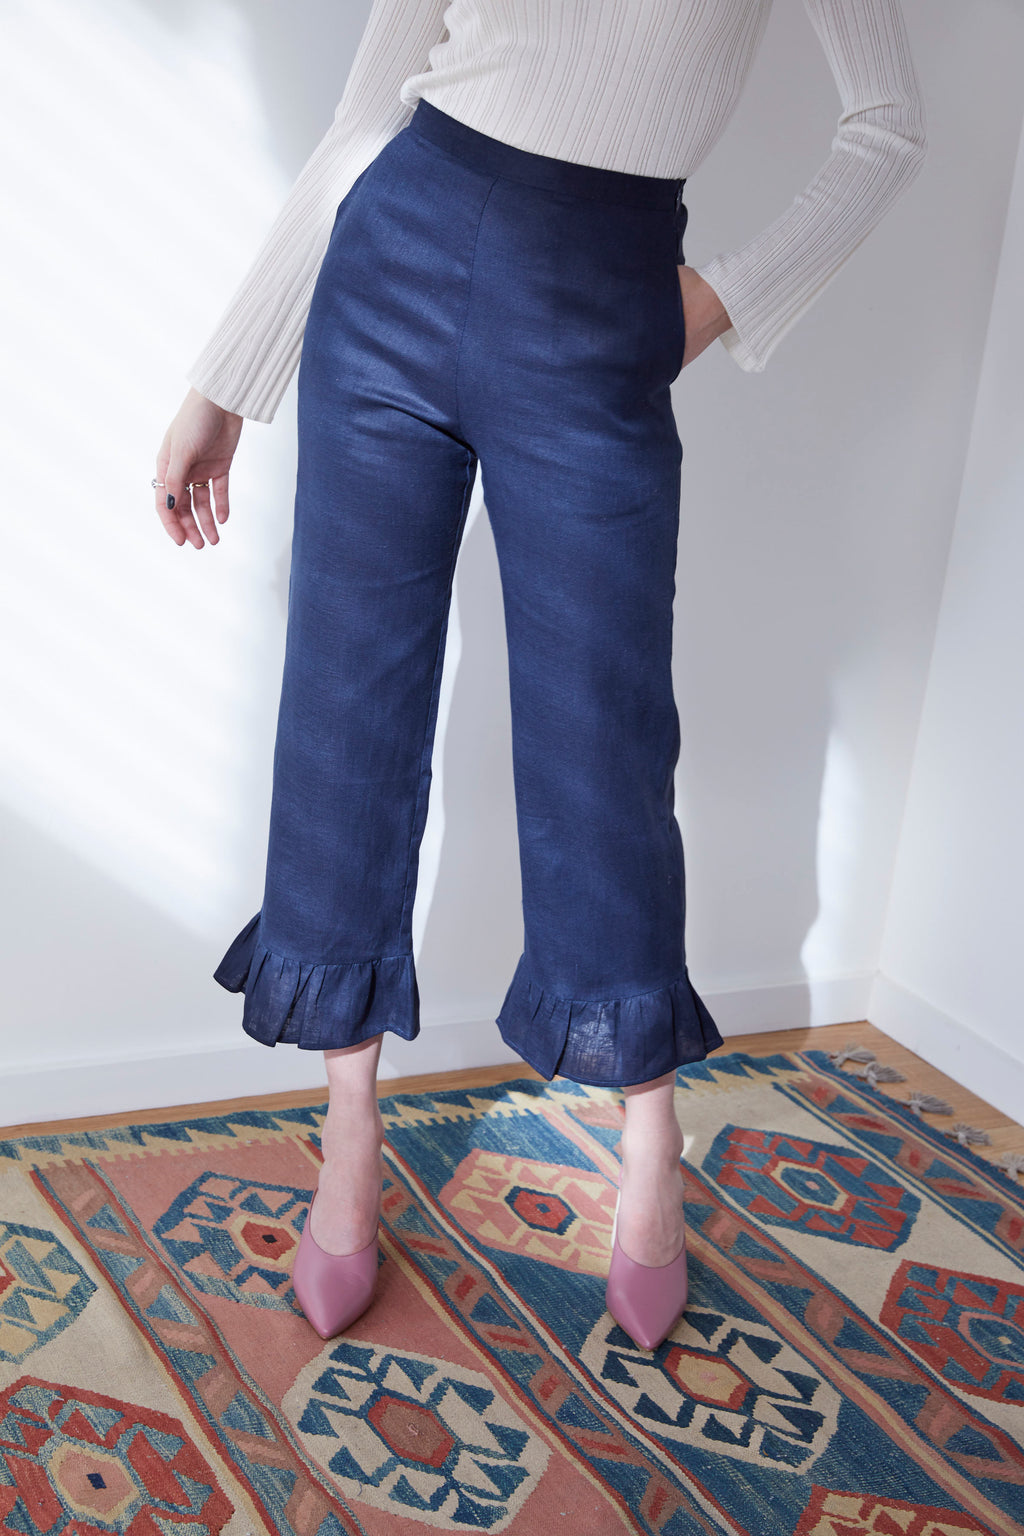 Yes Pants in Indigo - hej hej